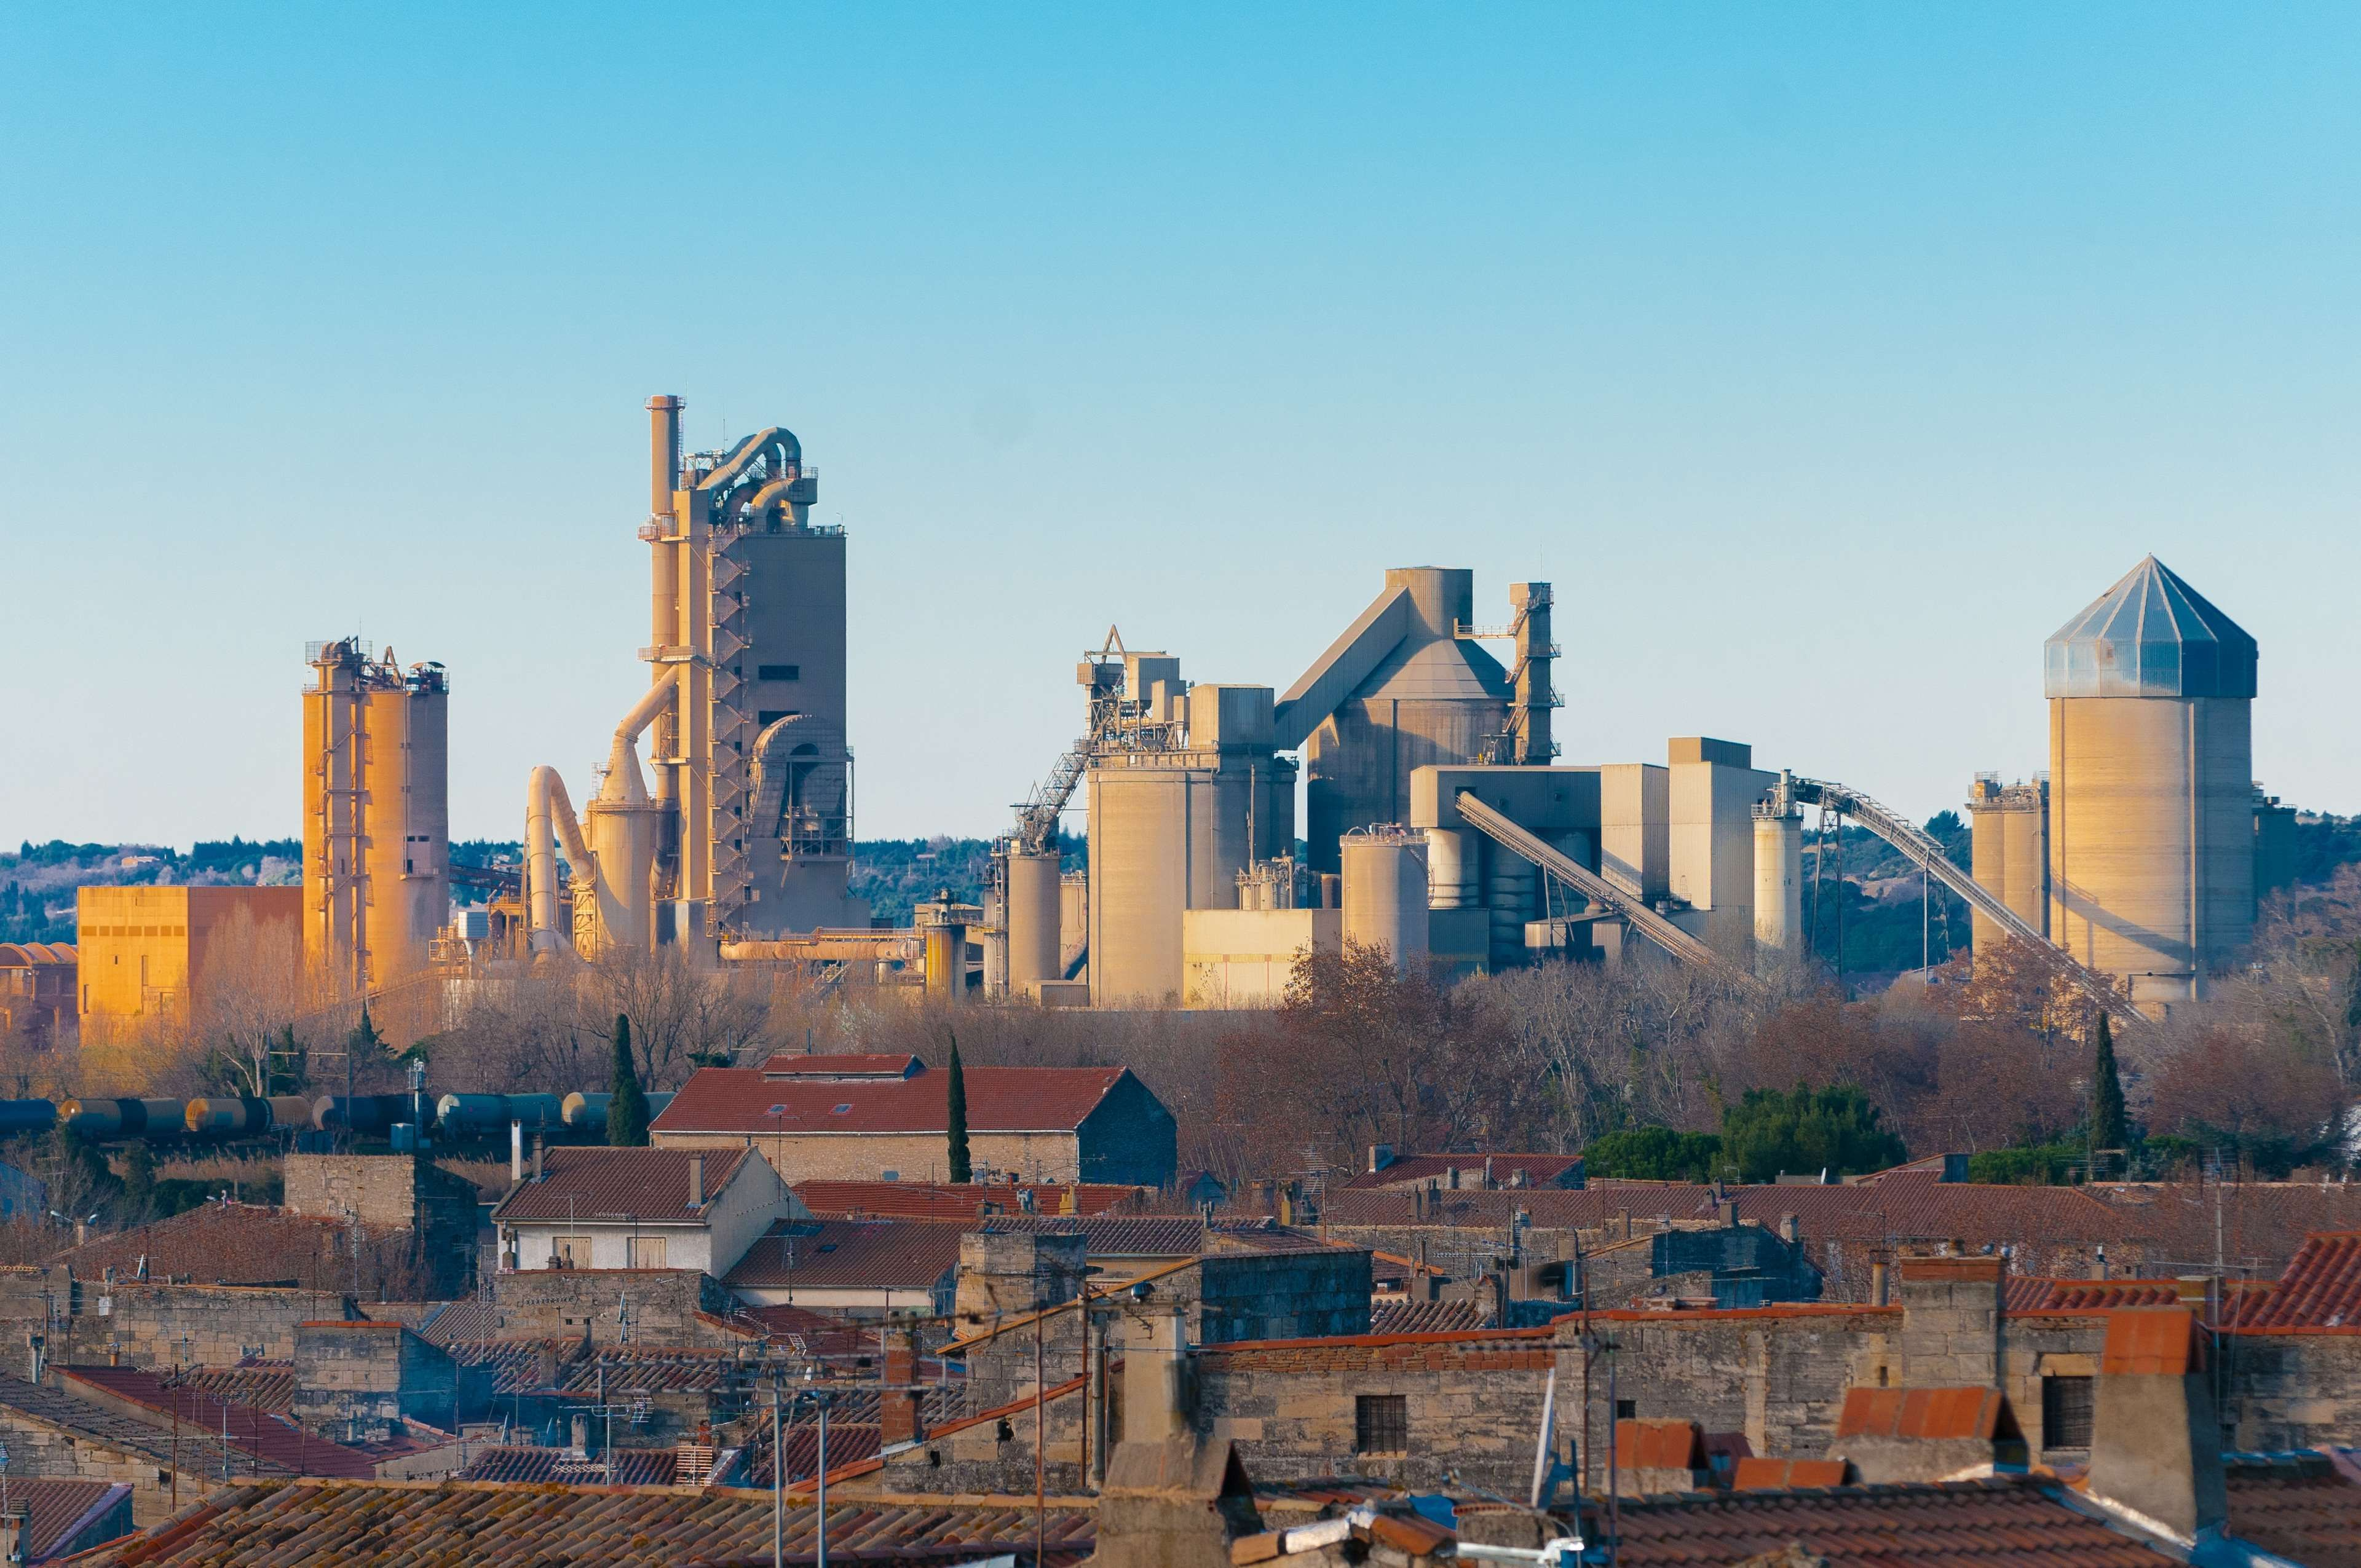 Beaucaire Business Cement Plant Factory Industrial Area